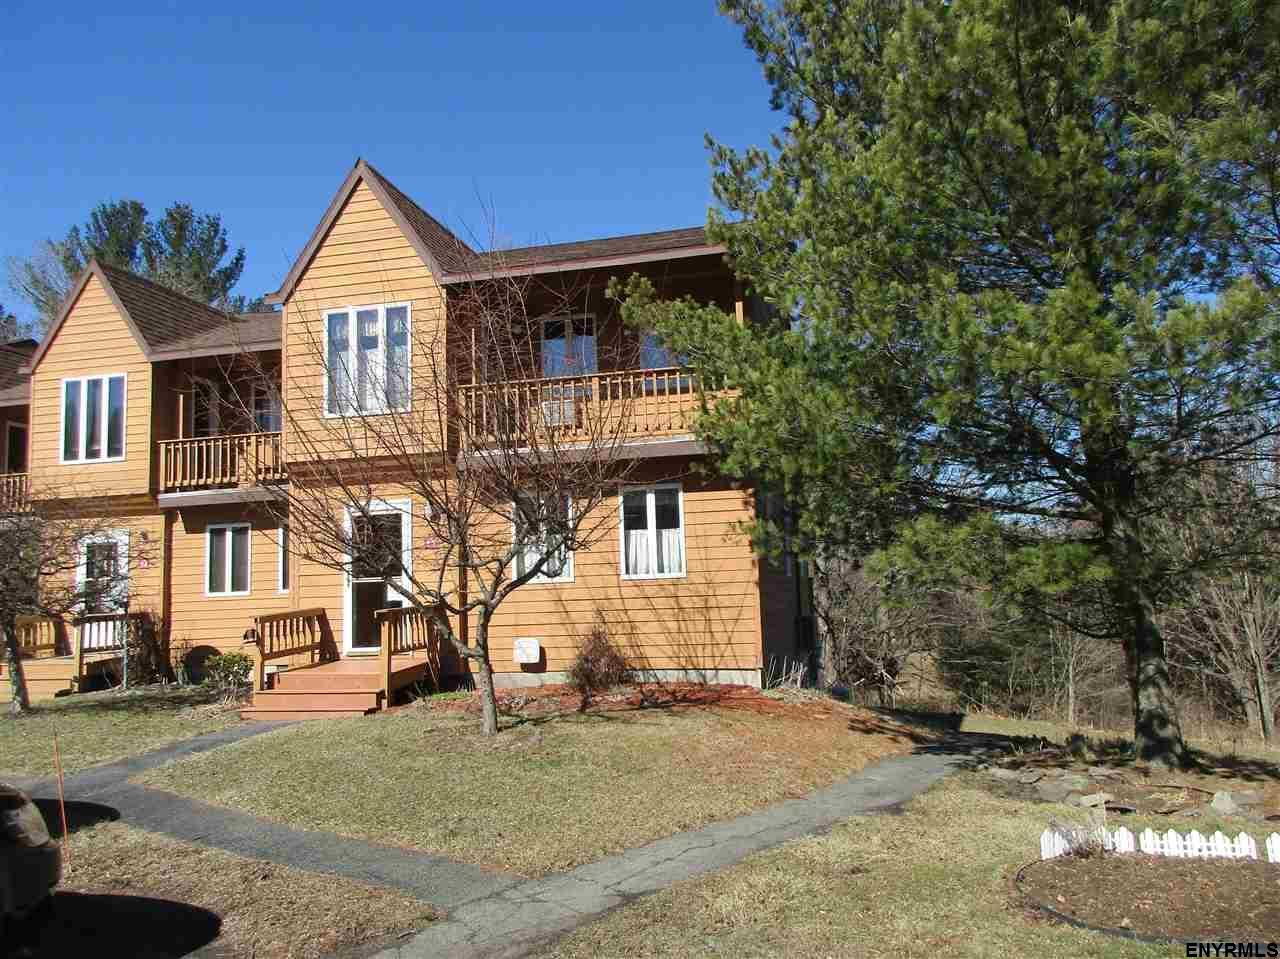 13 Glenwood Townhouse Rd, Round Top, NY